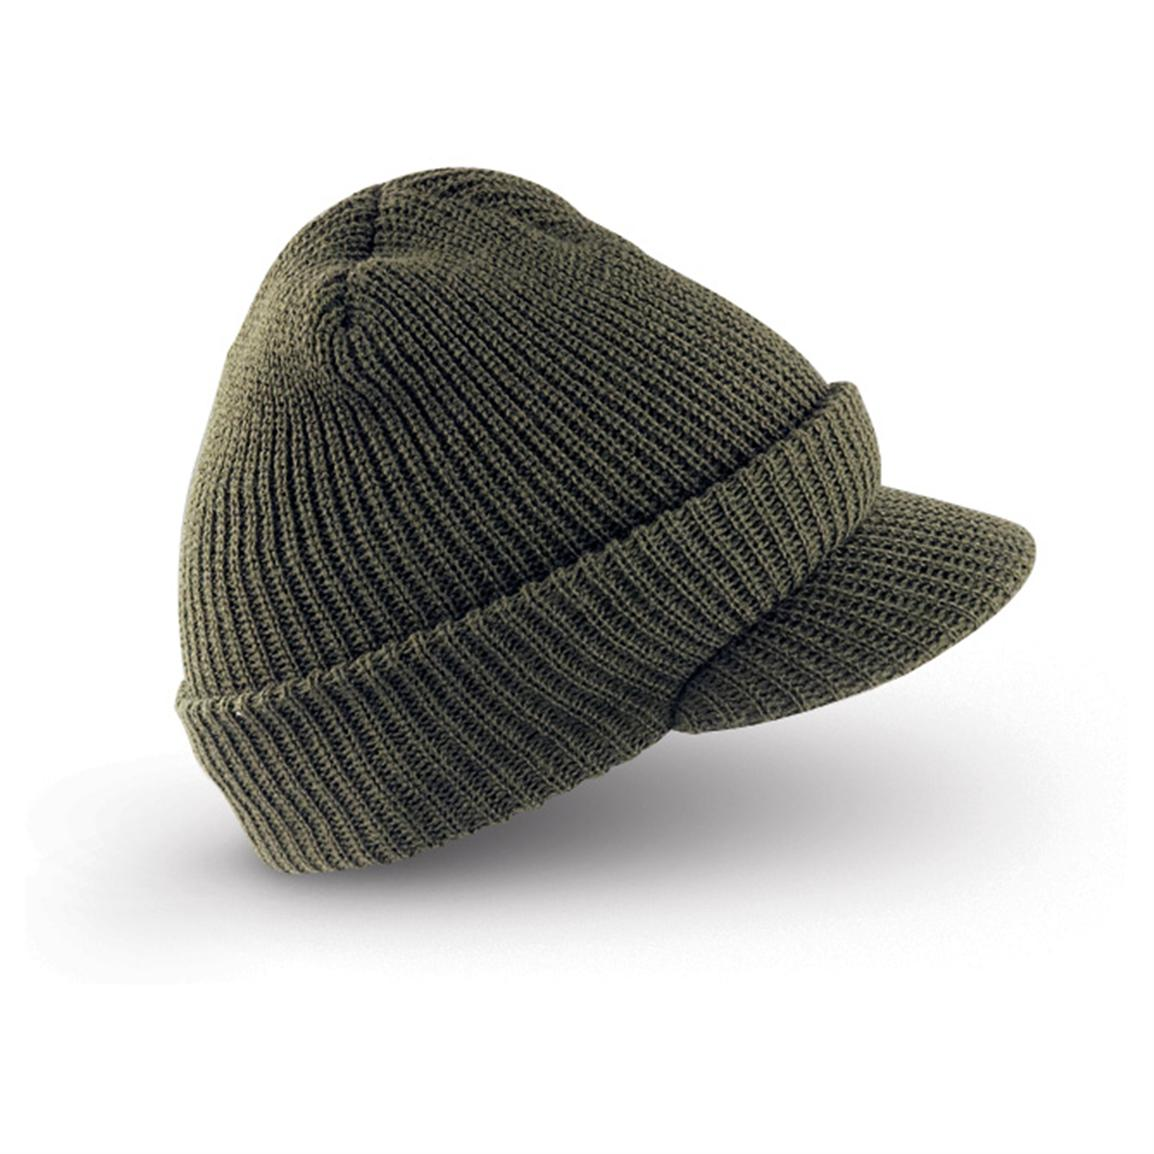 94b36ad3 3-Pack -Pack 100% Wool Military Jeep Cap, Black, Navy, OD, One Size ...